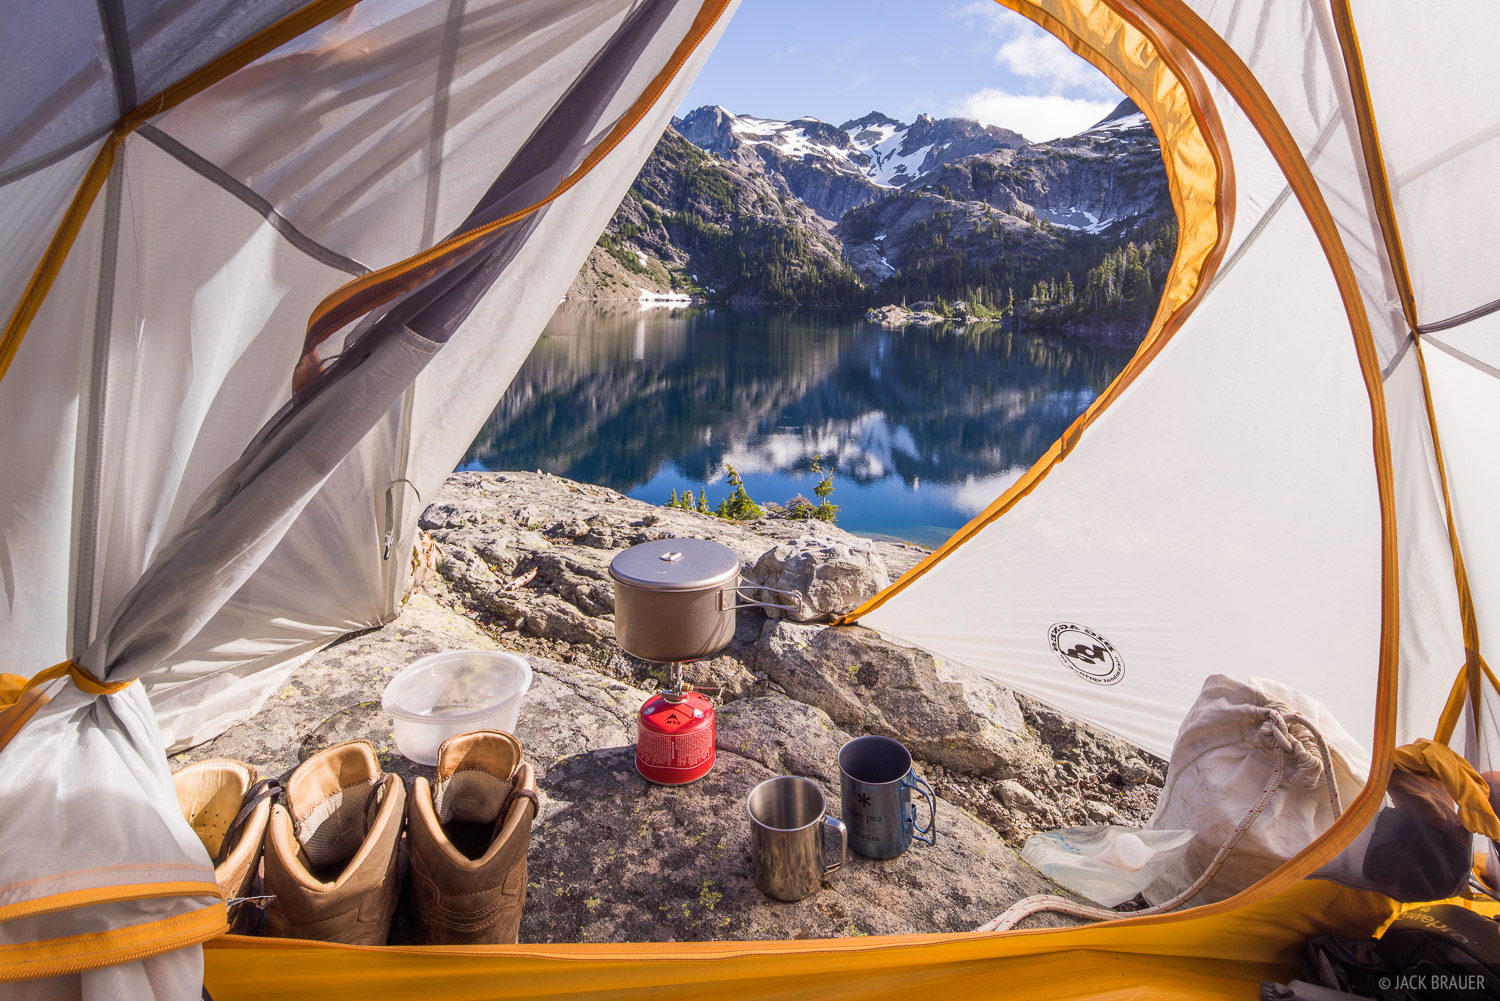 Alpine Lakes Wilderness, Mount Daniel, Spade Lake, Washington, tent, Cascades, photo